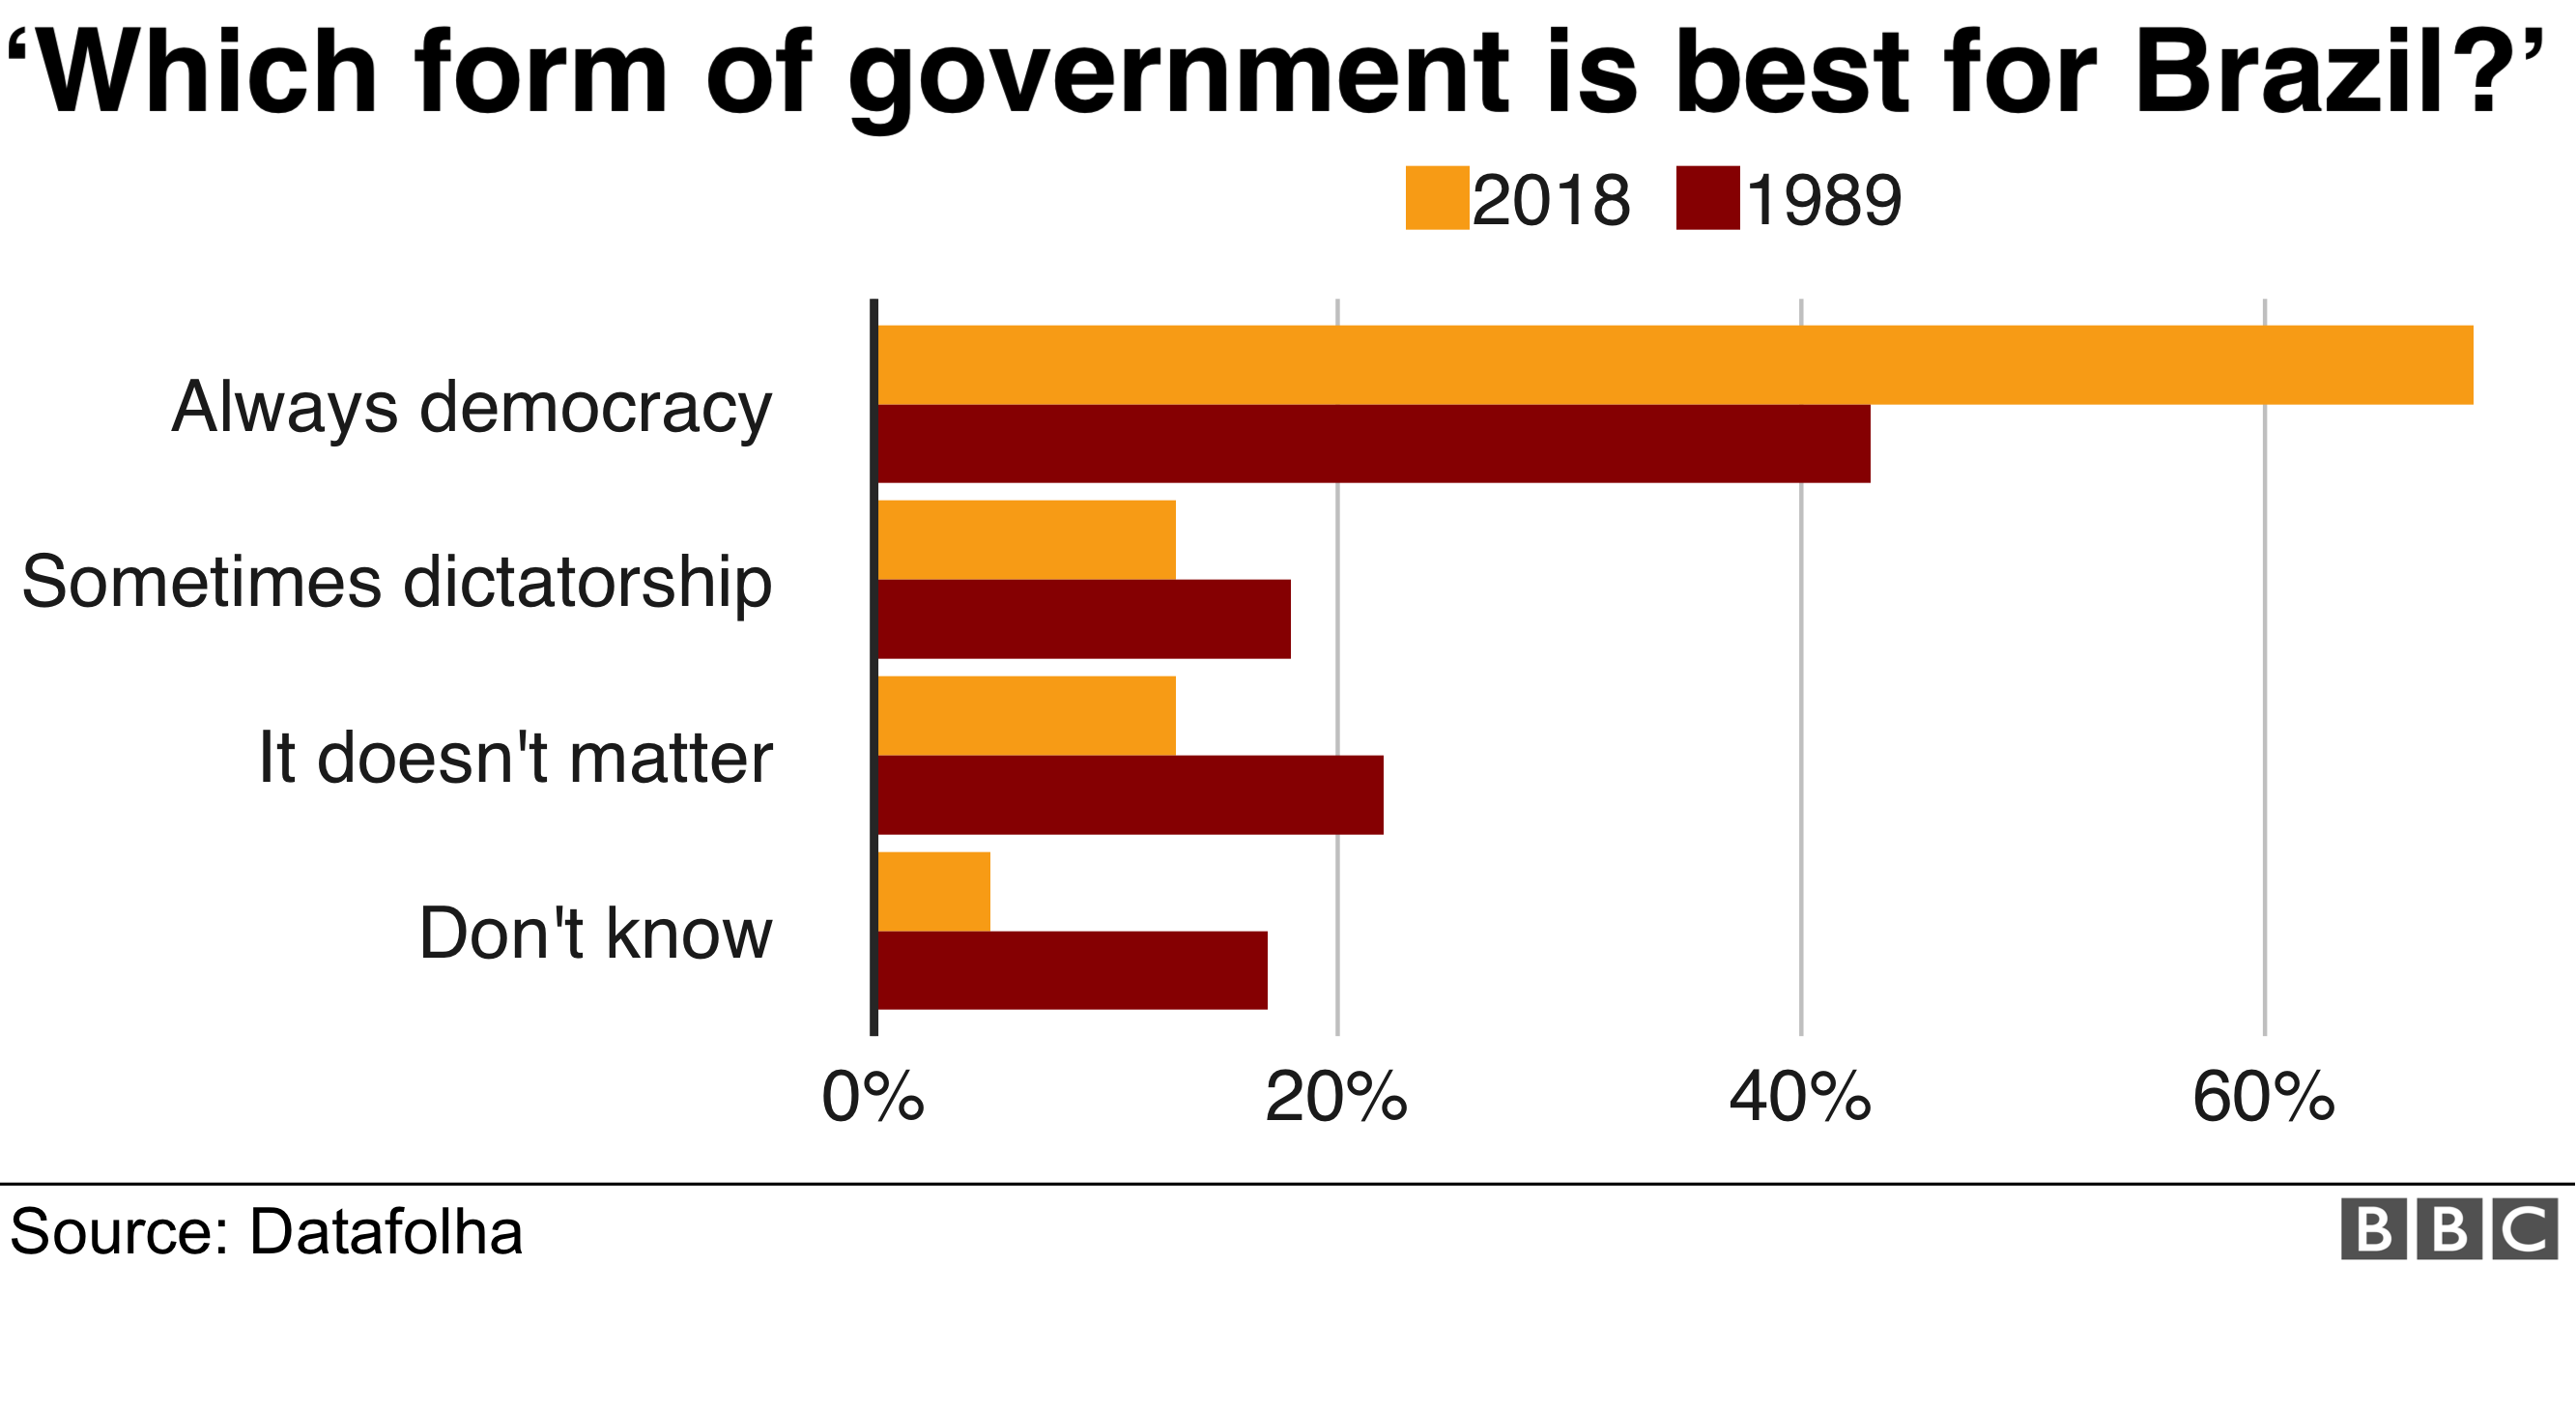 Graphs shows 69% of people believe democracy is always the best way to form a government